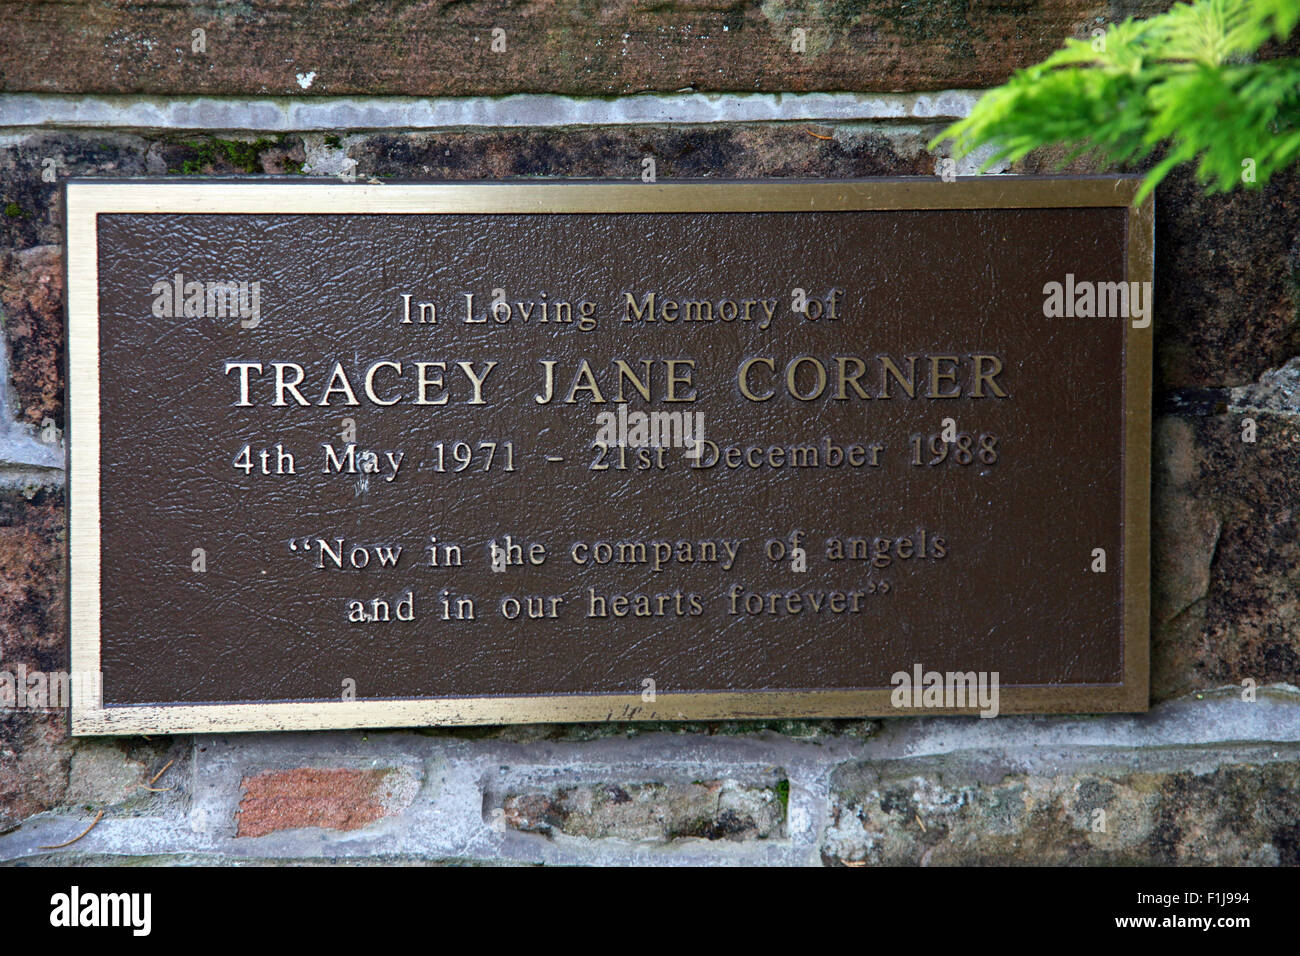 Jane Corner,Scotland,Lodge,Visitors,Centre,DLVC,Trust,Lockerbie,Memorial,Remembrance,Scotland,Victims,Pan,Am,PanAm,flight,103,bomb,bombing,terrorist,December,1988,attack,crash,dead,site,21/12/1988,270,victims,Scottish,Town,conspiracy,blast,Tundergarth,Room,garden,of,Dryfesdale,Cemetery,New York,GoTonySmith,Lodge,Visitors,Centre,DLVC,Trust,Lockerbie,Memorial,Scotland,Victims,Pan,Am,PanAm,flight,103,bomb,bombing,terrorist,December,1988,attack,crash,dead,site,21/12/1988,270,victims,Scottish,Town,conspiracy,blast,Tundergarth,Room,garden,of,Dryfesdale,Cemetery,news,Cultural,understanding,remembering,innocent,transatlantic,Frankfurt,Detroit,Libyan,Libya,Colonel Muammar Gaddafi,civil,case,compensation,terrorism,PA103,30,30years,years,Syracuse,University,SU,family,collections,Story,Archive,Archives,40,35,Timeline,saga,disaster,air,Scholars,program,programs,remembrance,Clipper Maid of the Seas,N739PA,Boeing,727,plane,aircraft,Scotland,UK,United Kingdom,GB,Great Britain,resting,place,Buy Pictures of,Buy Images Of,New York,al megrahi,30 Years